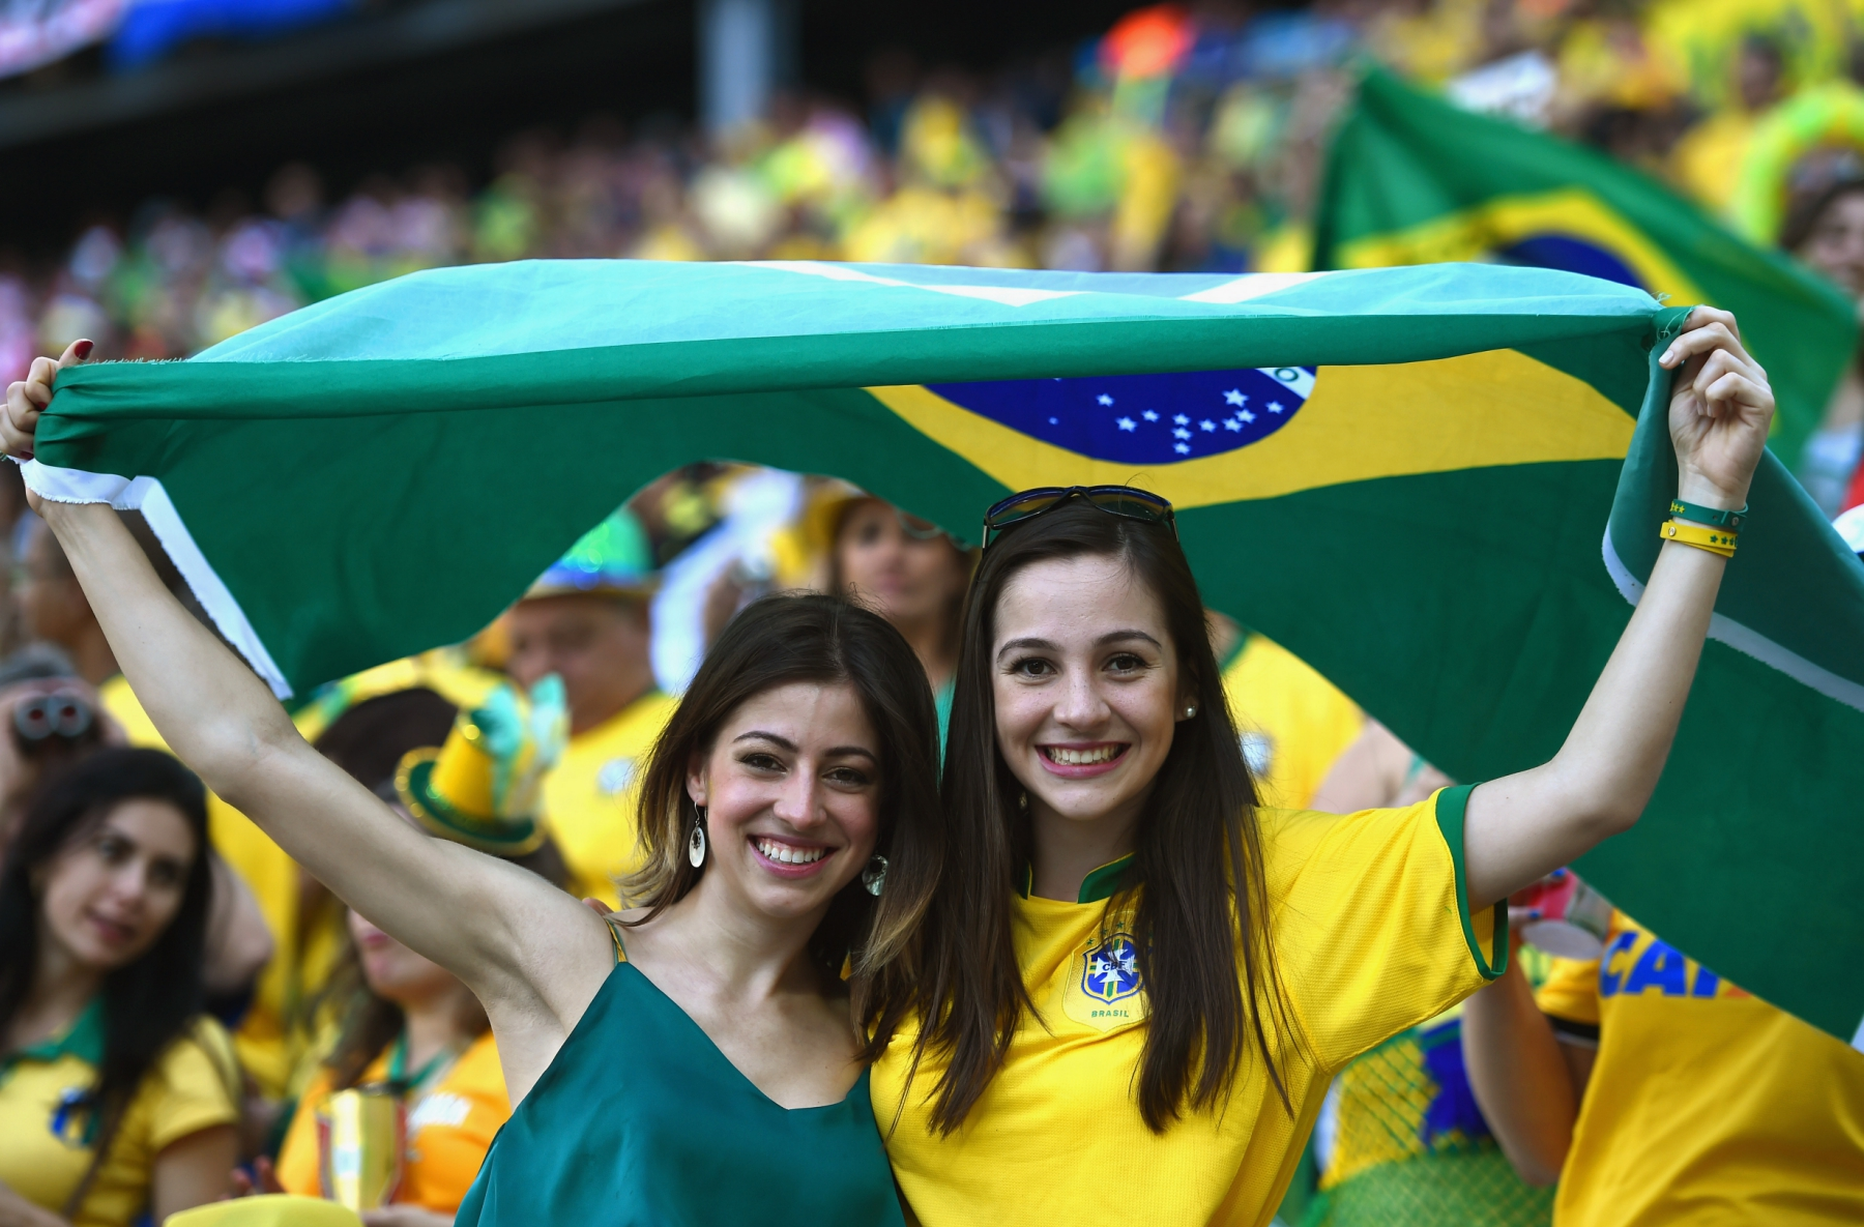 Other Brazil world cup fans